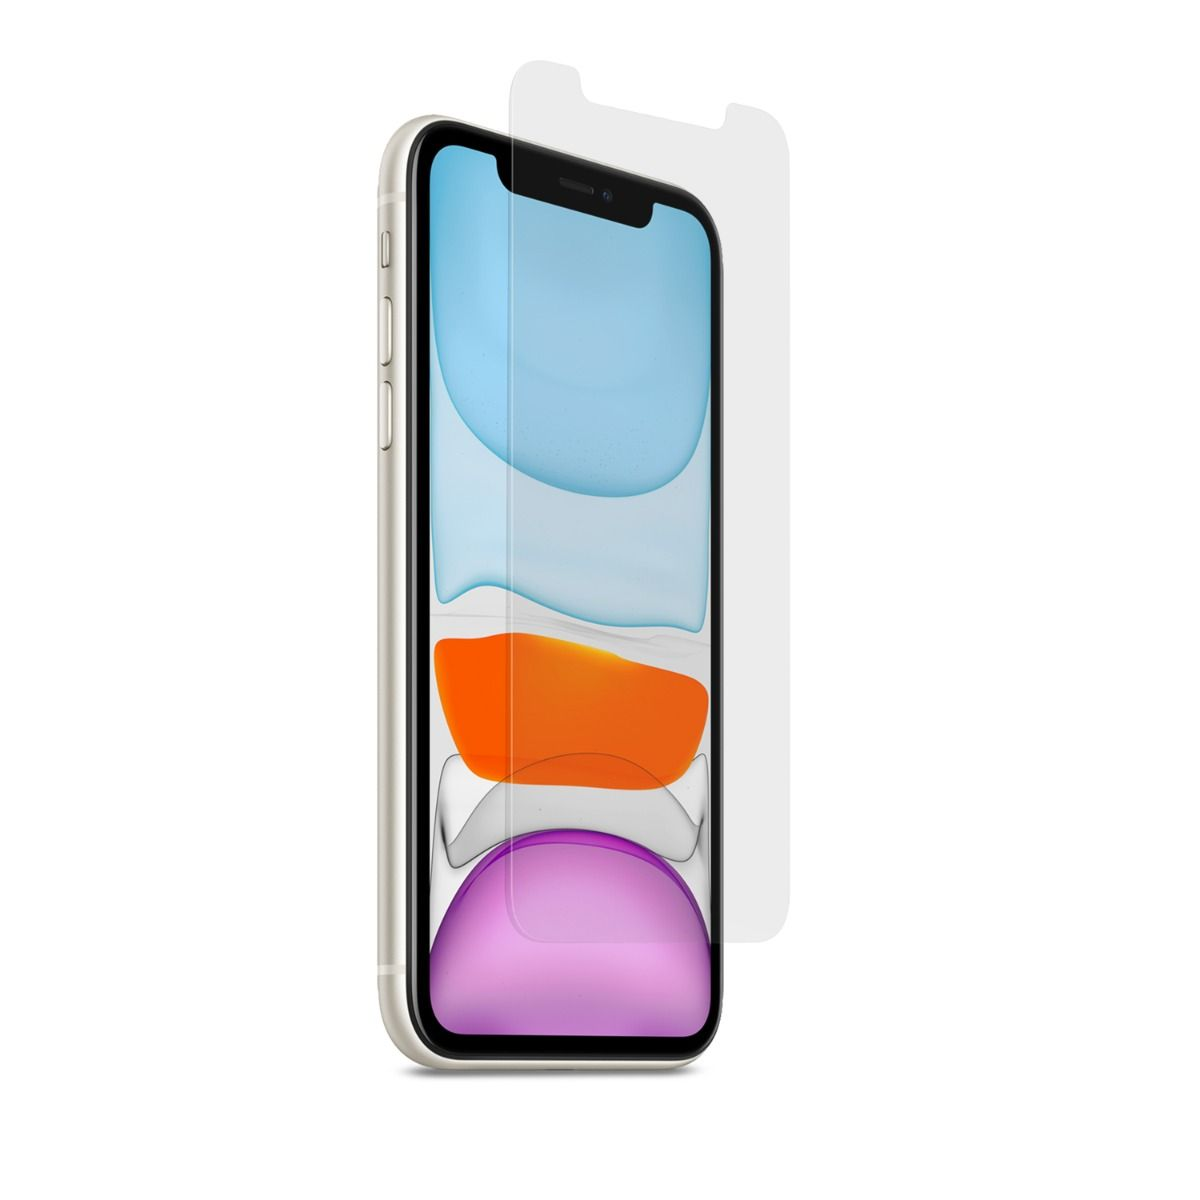 Apple iPhone 11 High-Definition Glass Screen Protector (No Alignment Tray)